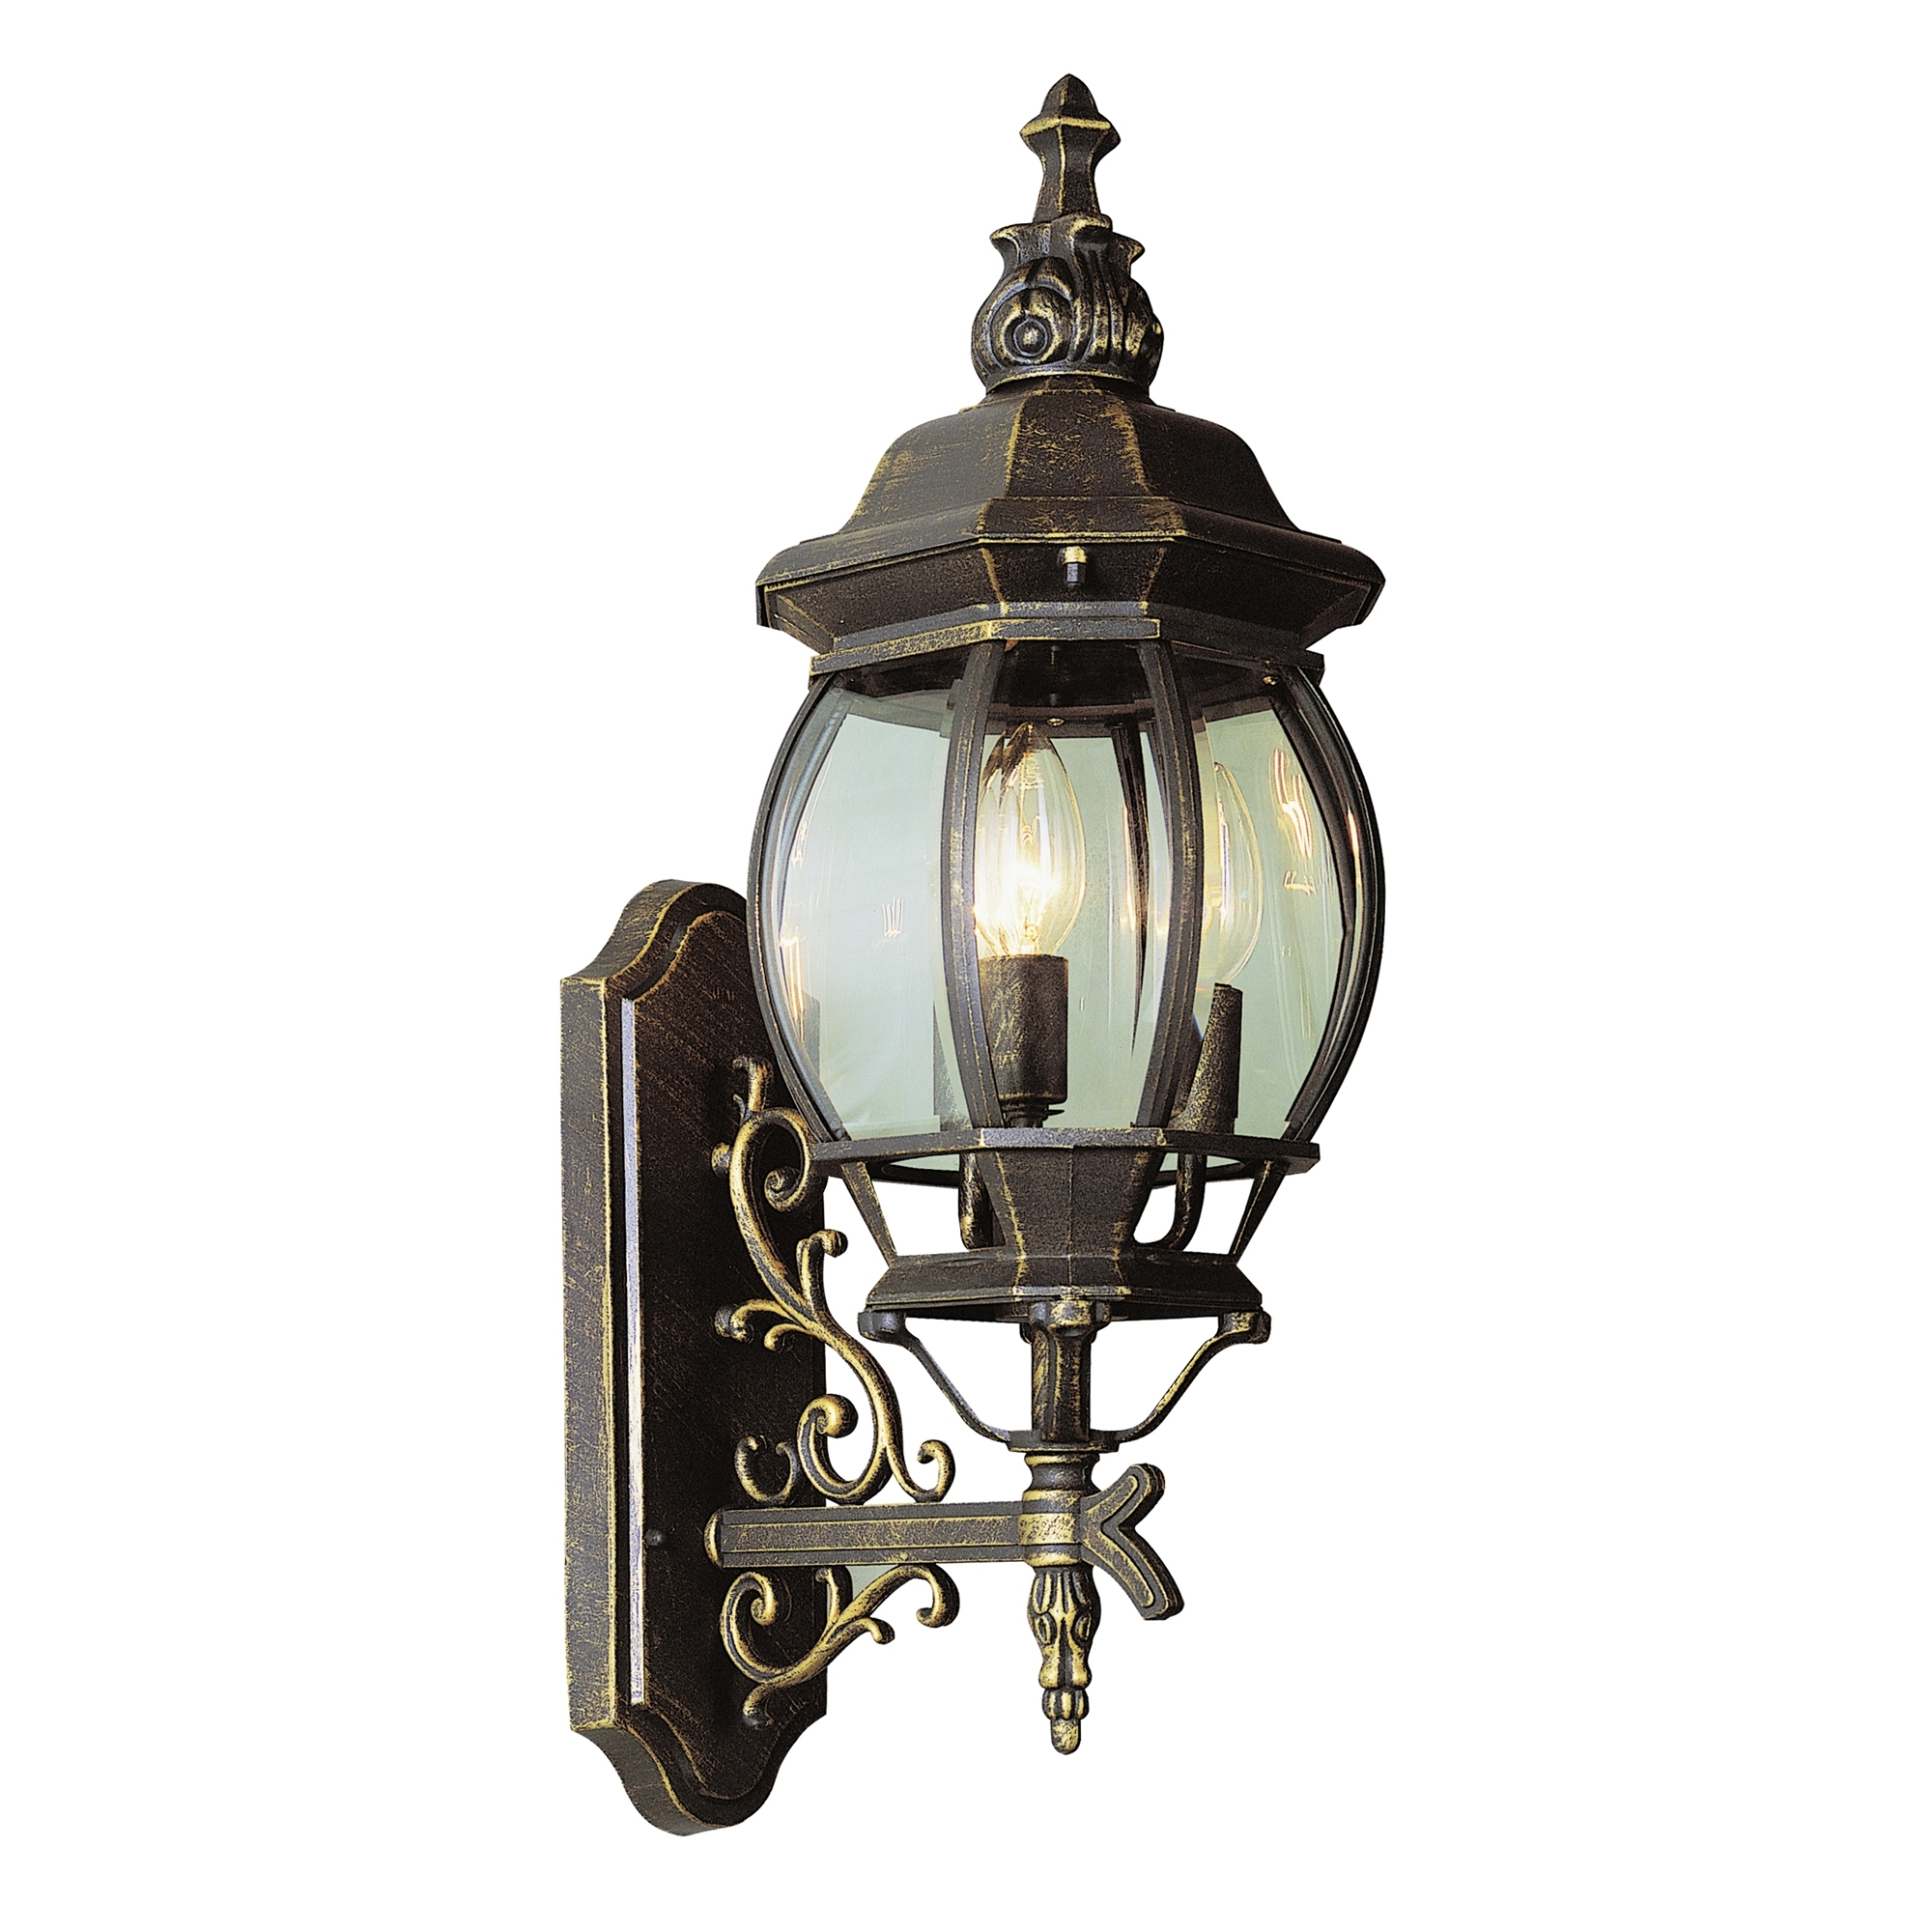 Outdoor Wall Lantern By Transglobe Lighting Within Most Recent Trans Globe 4051 Bg Rochelle Black Gold Outdoor Wall Sconce: Littman (View 15 of 20)